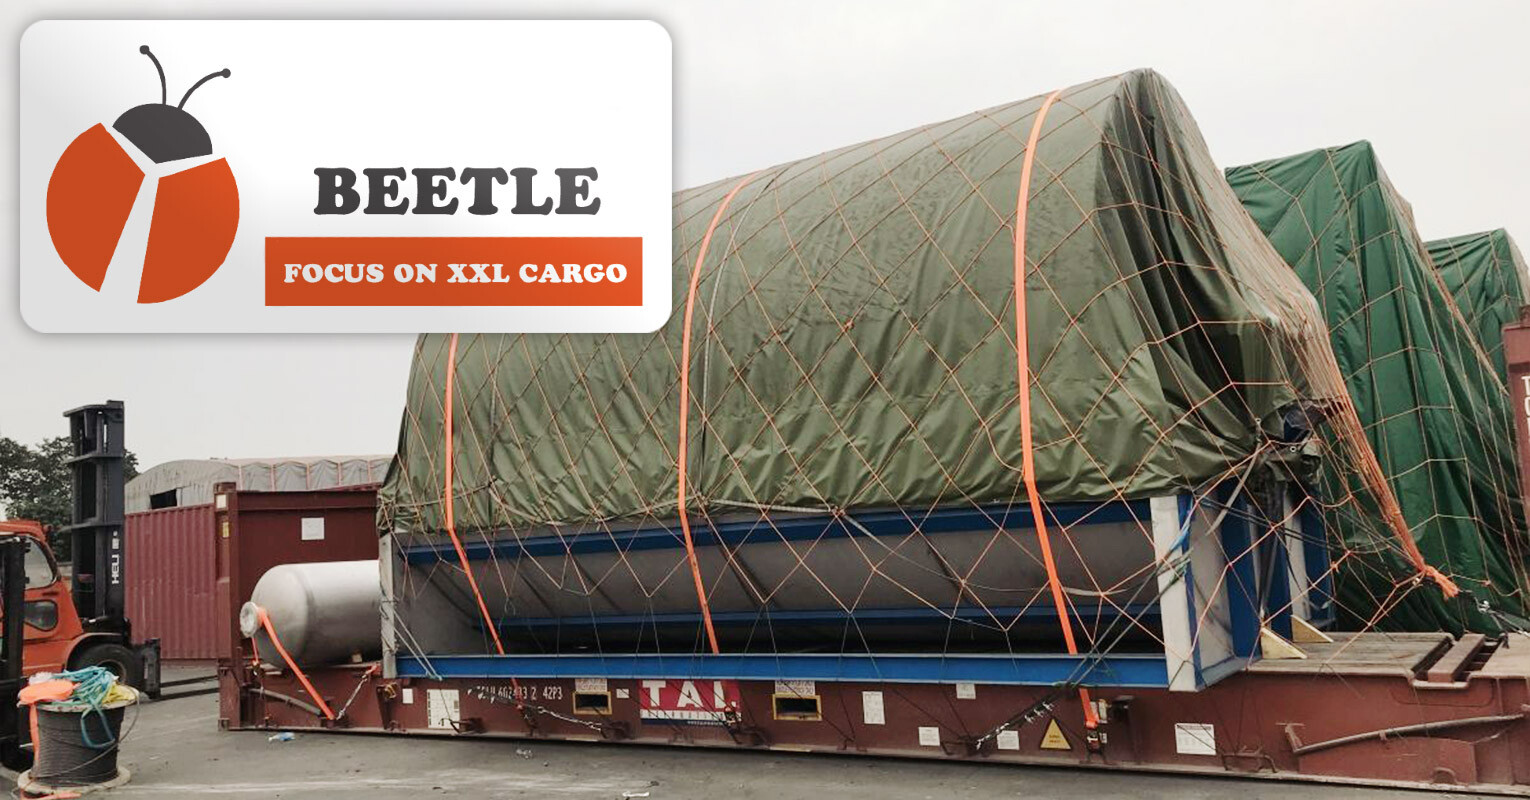 Shanghai Beetle Handled OOG Cargo from Shanghai, China to Semarang, Indonesia